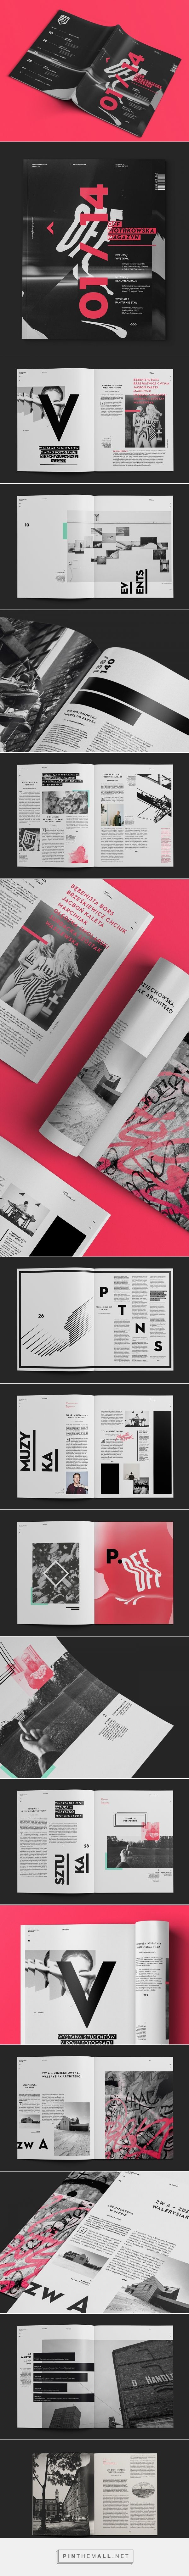 Off piotrkowska magazine powerpoint design inspiration also best zine images on pinterest editorial graph rh